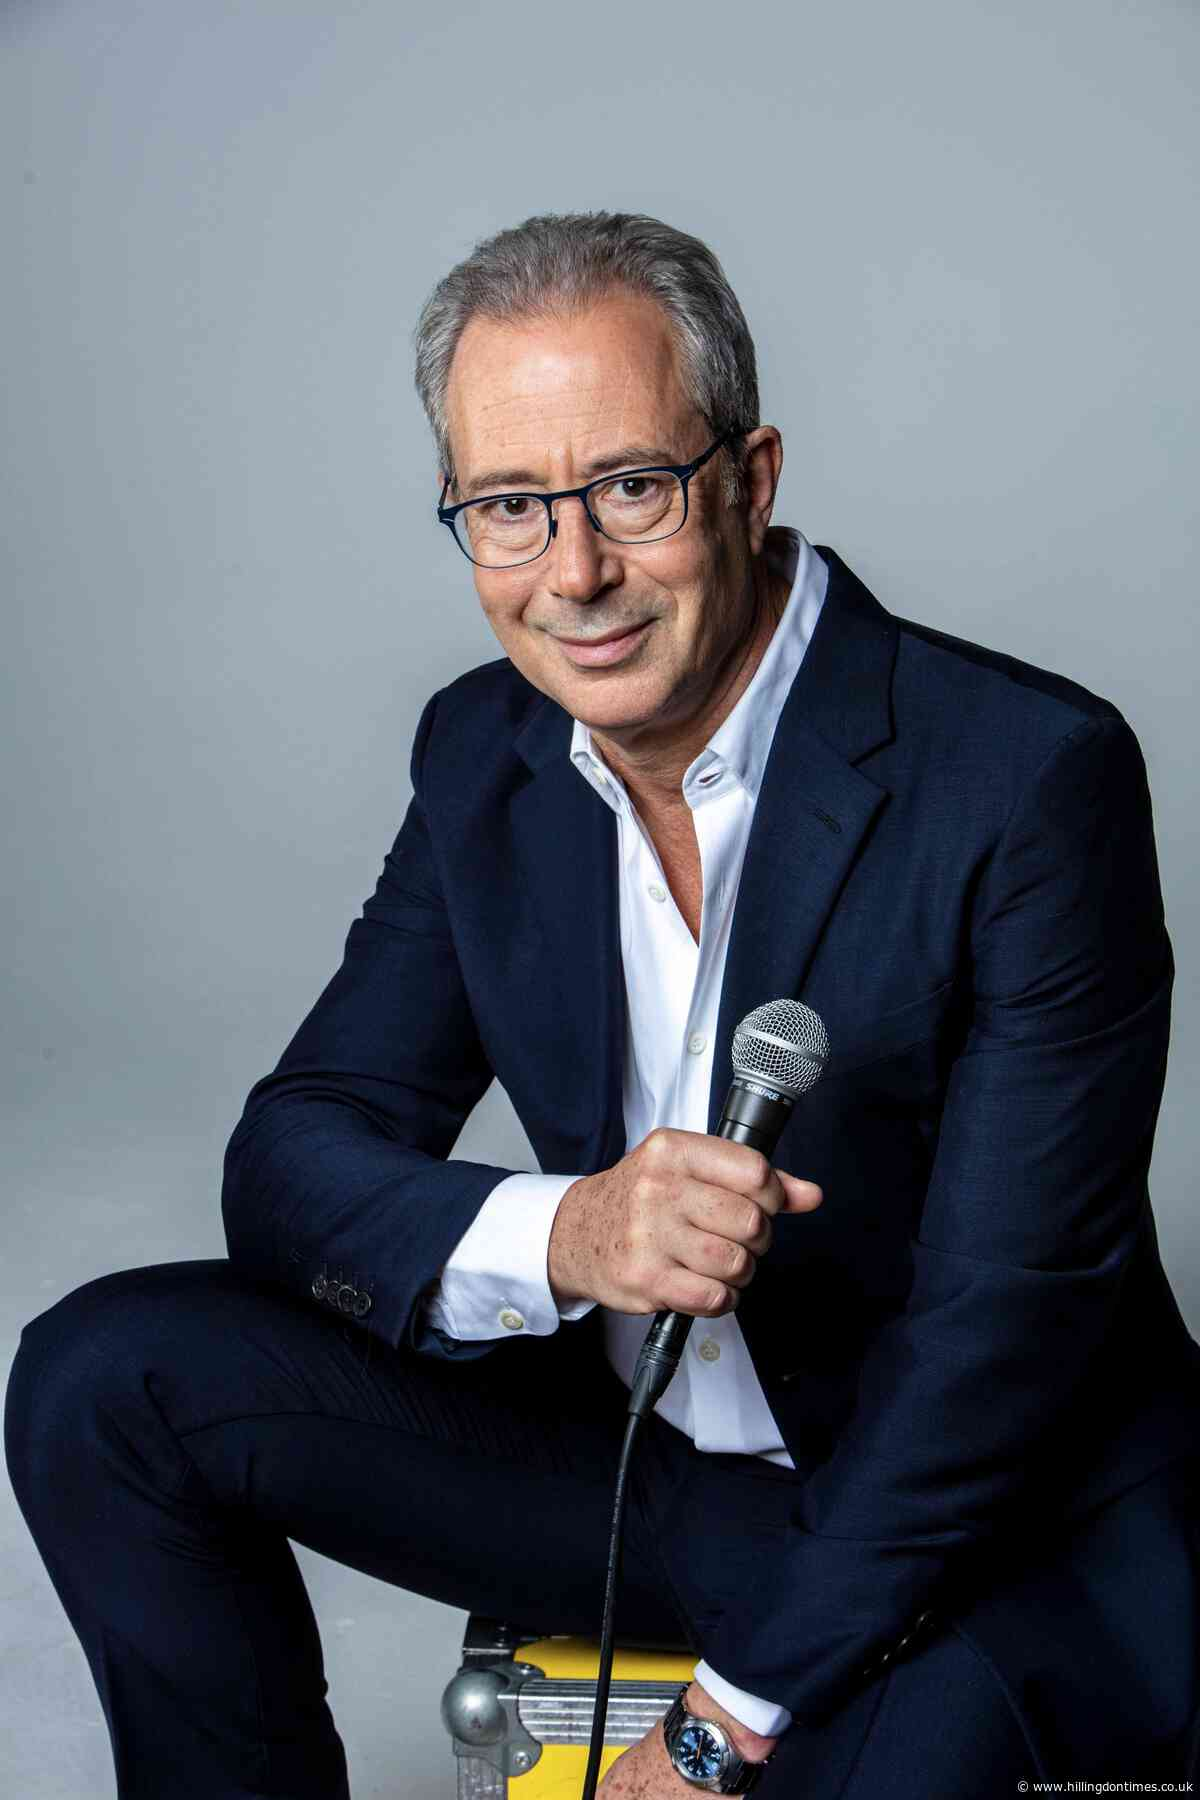 Superstar comedian Ben Elton comes to Watford with his new stand-up tour